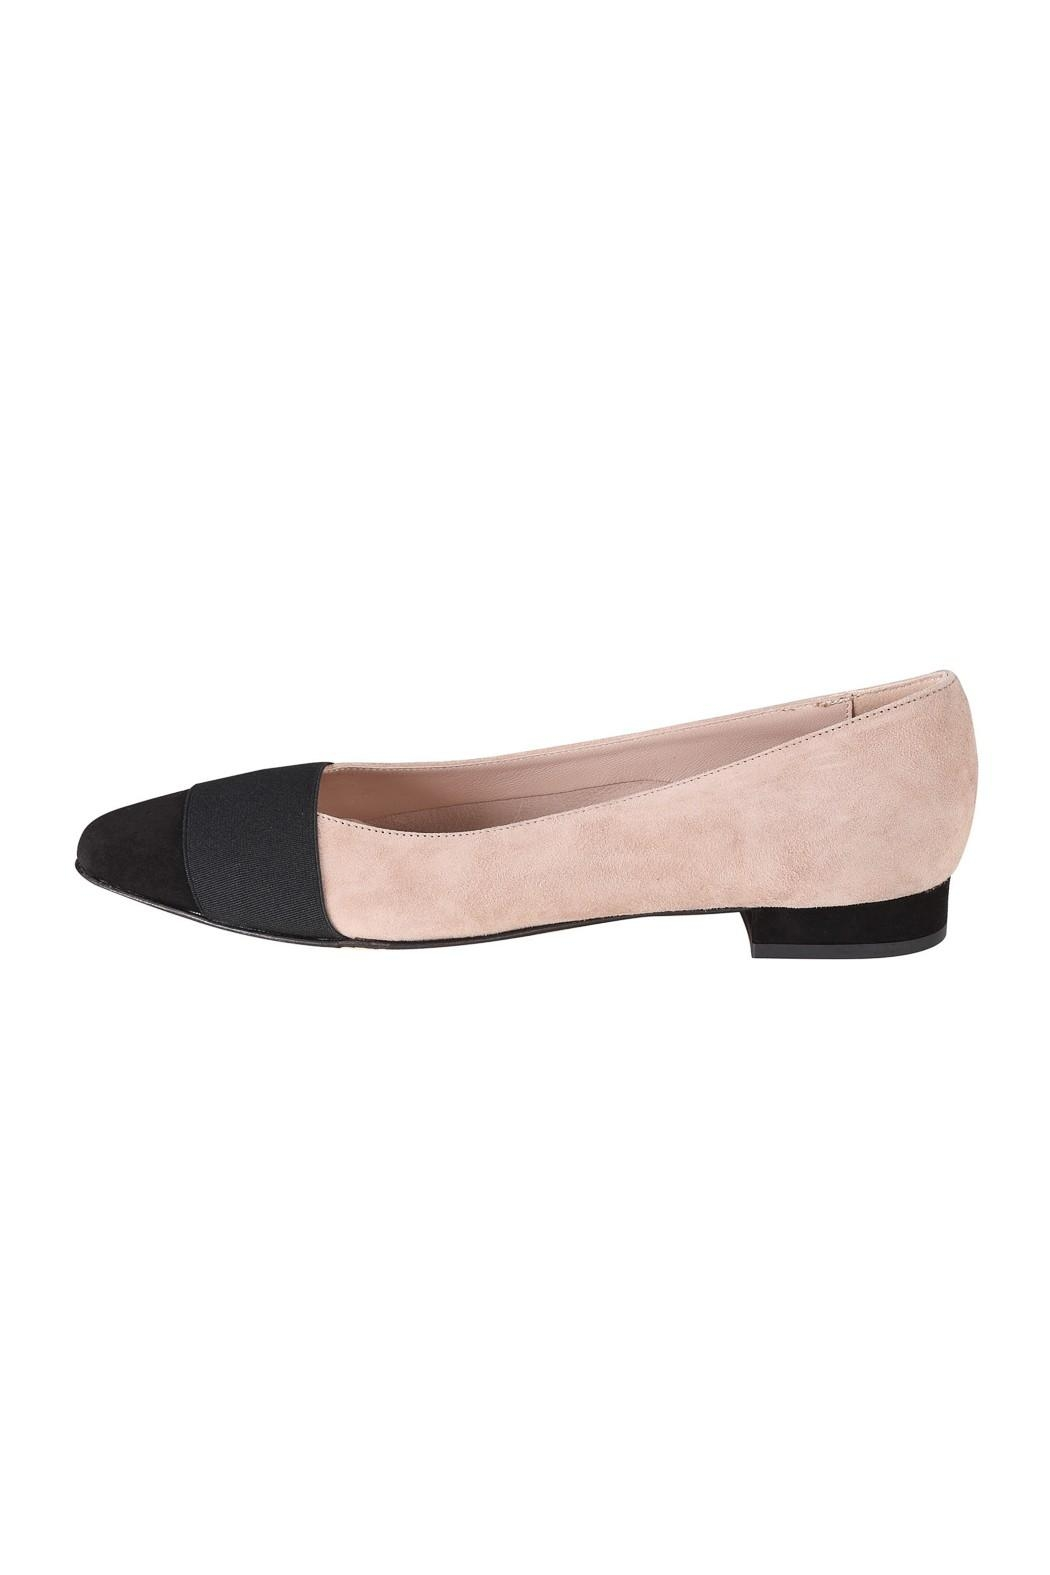 Pascucci Two-Tone Ballet Flats - Main Image